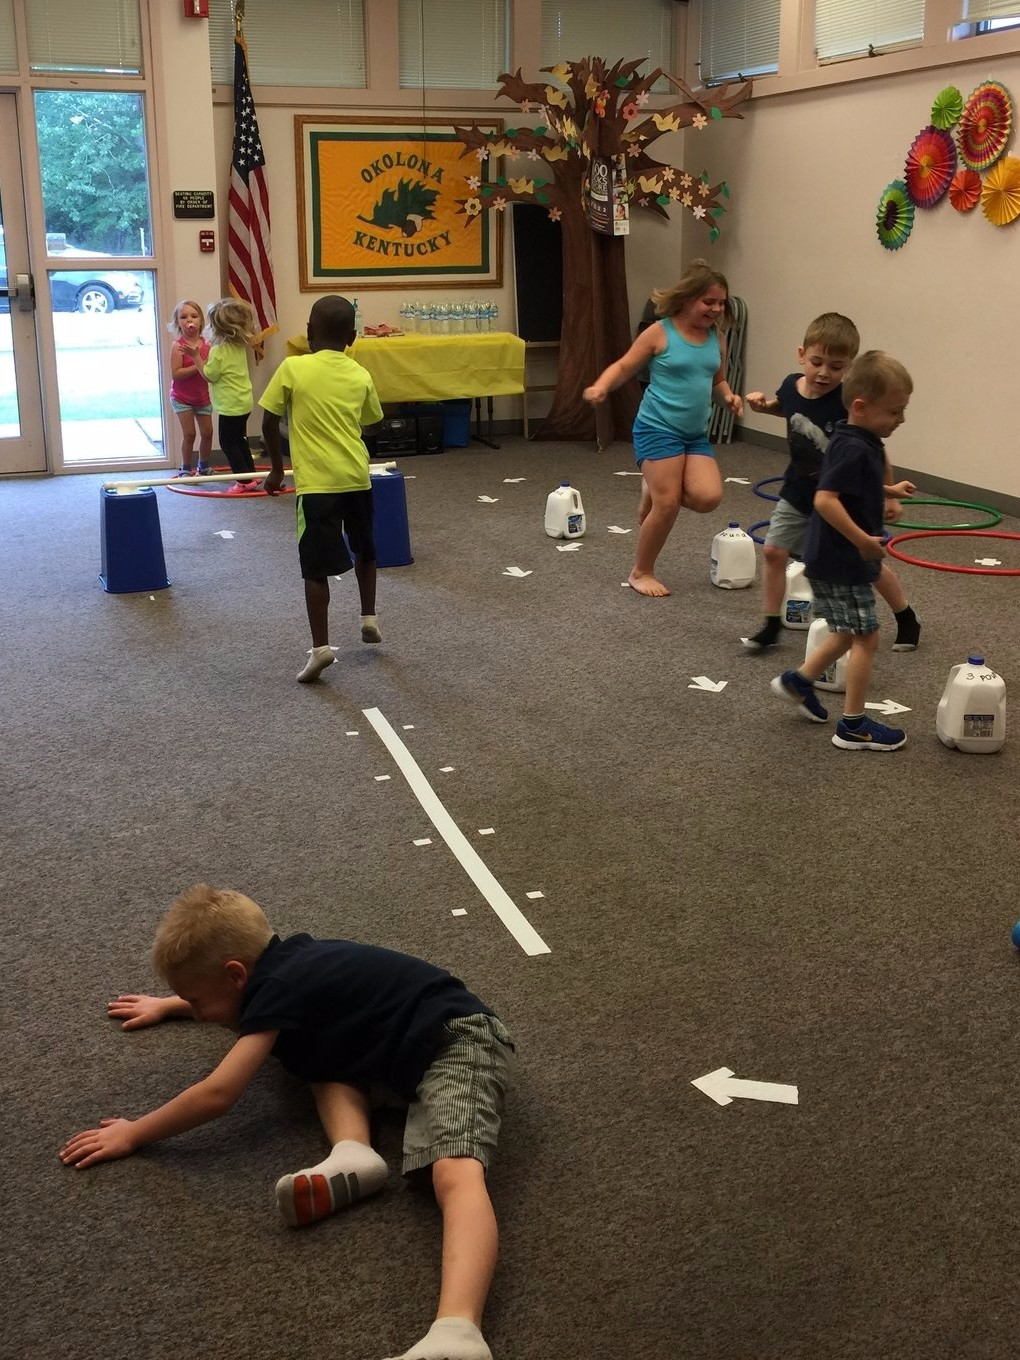 Campers enjoying an indoor obstacle course at Okolona library